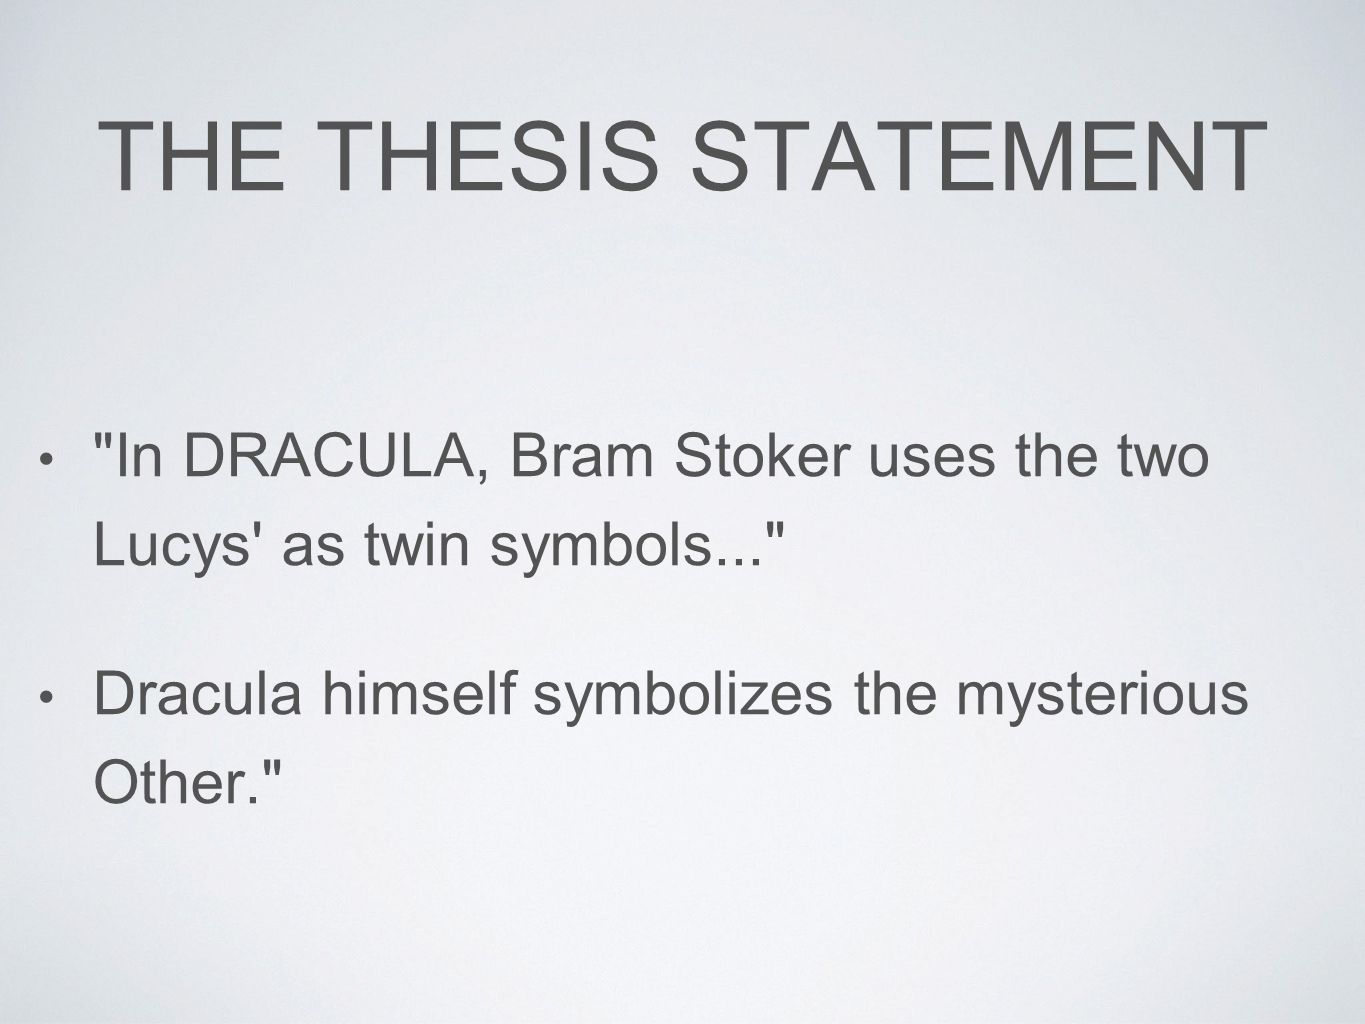 literature and composition ppt video online  8 the thesis statement in dracula